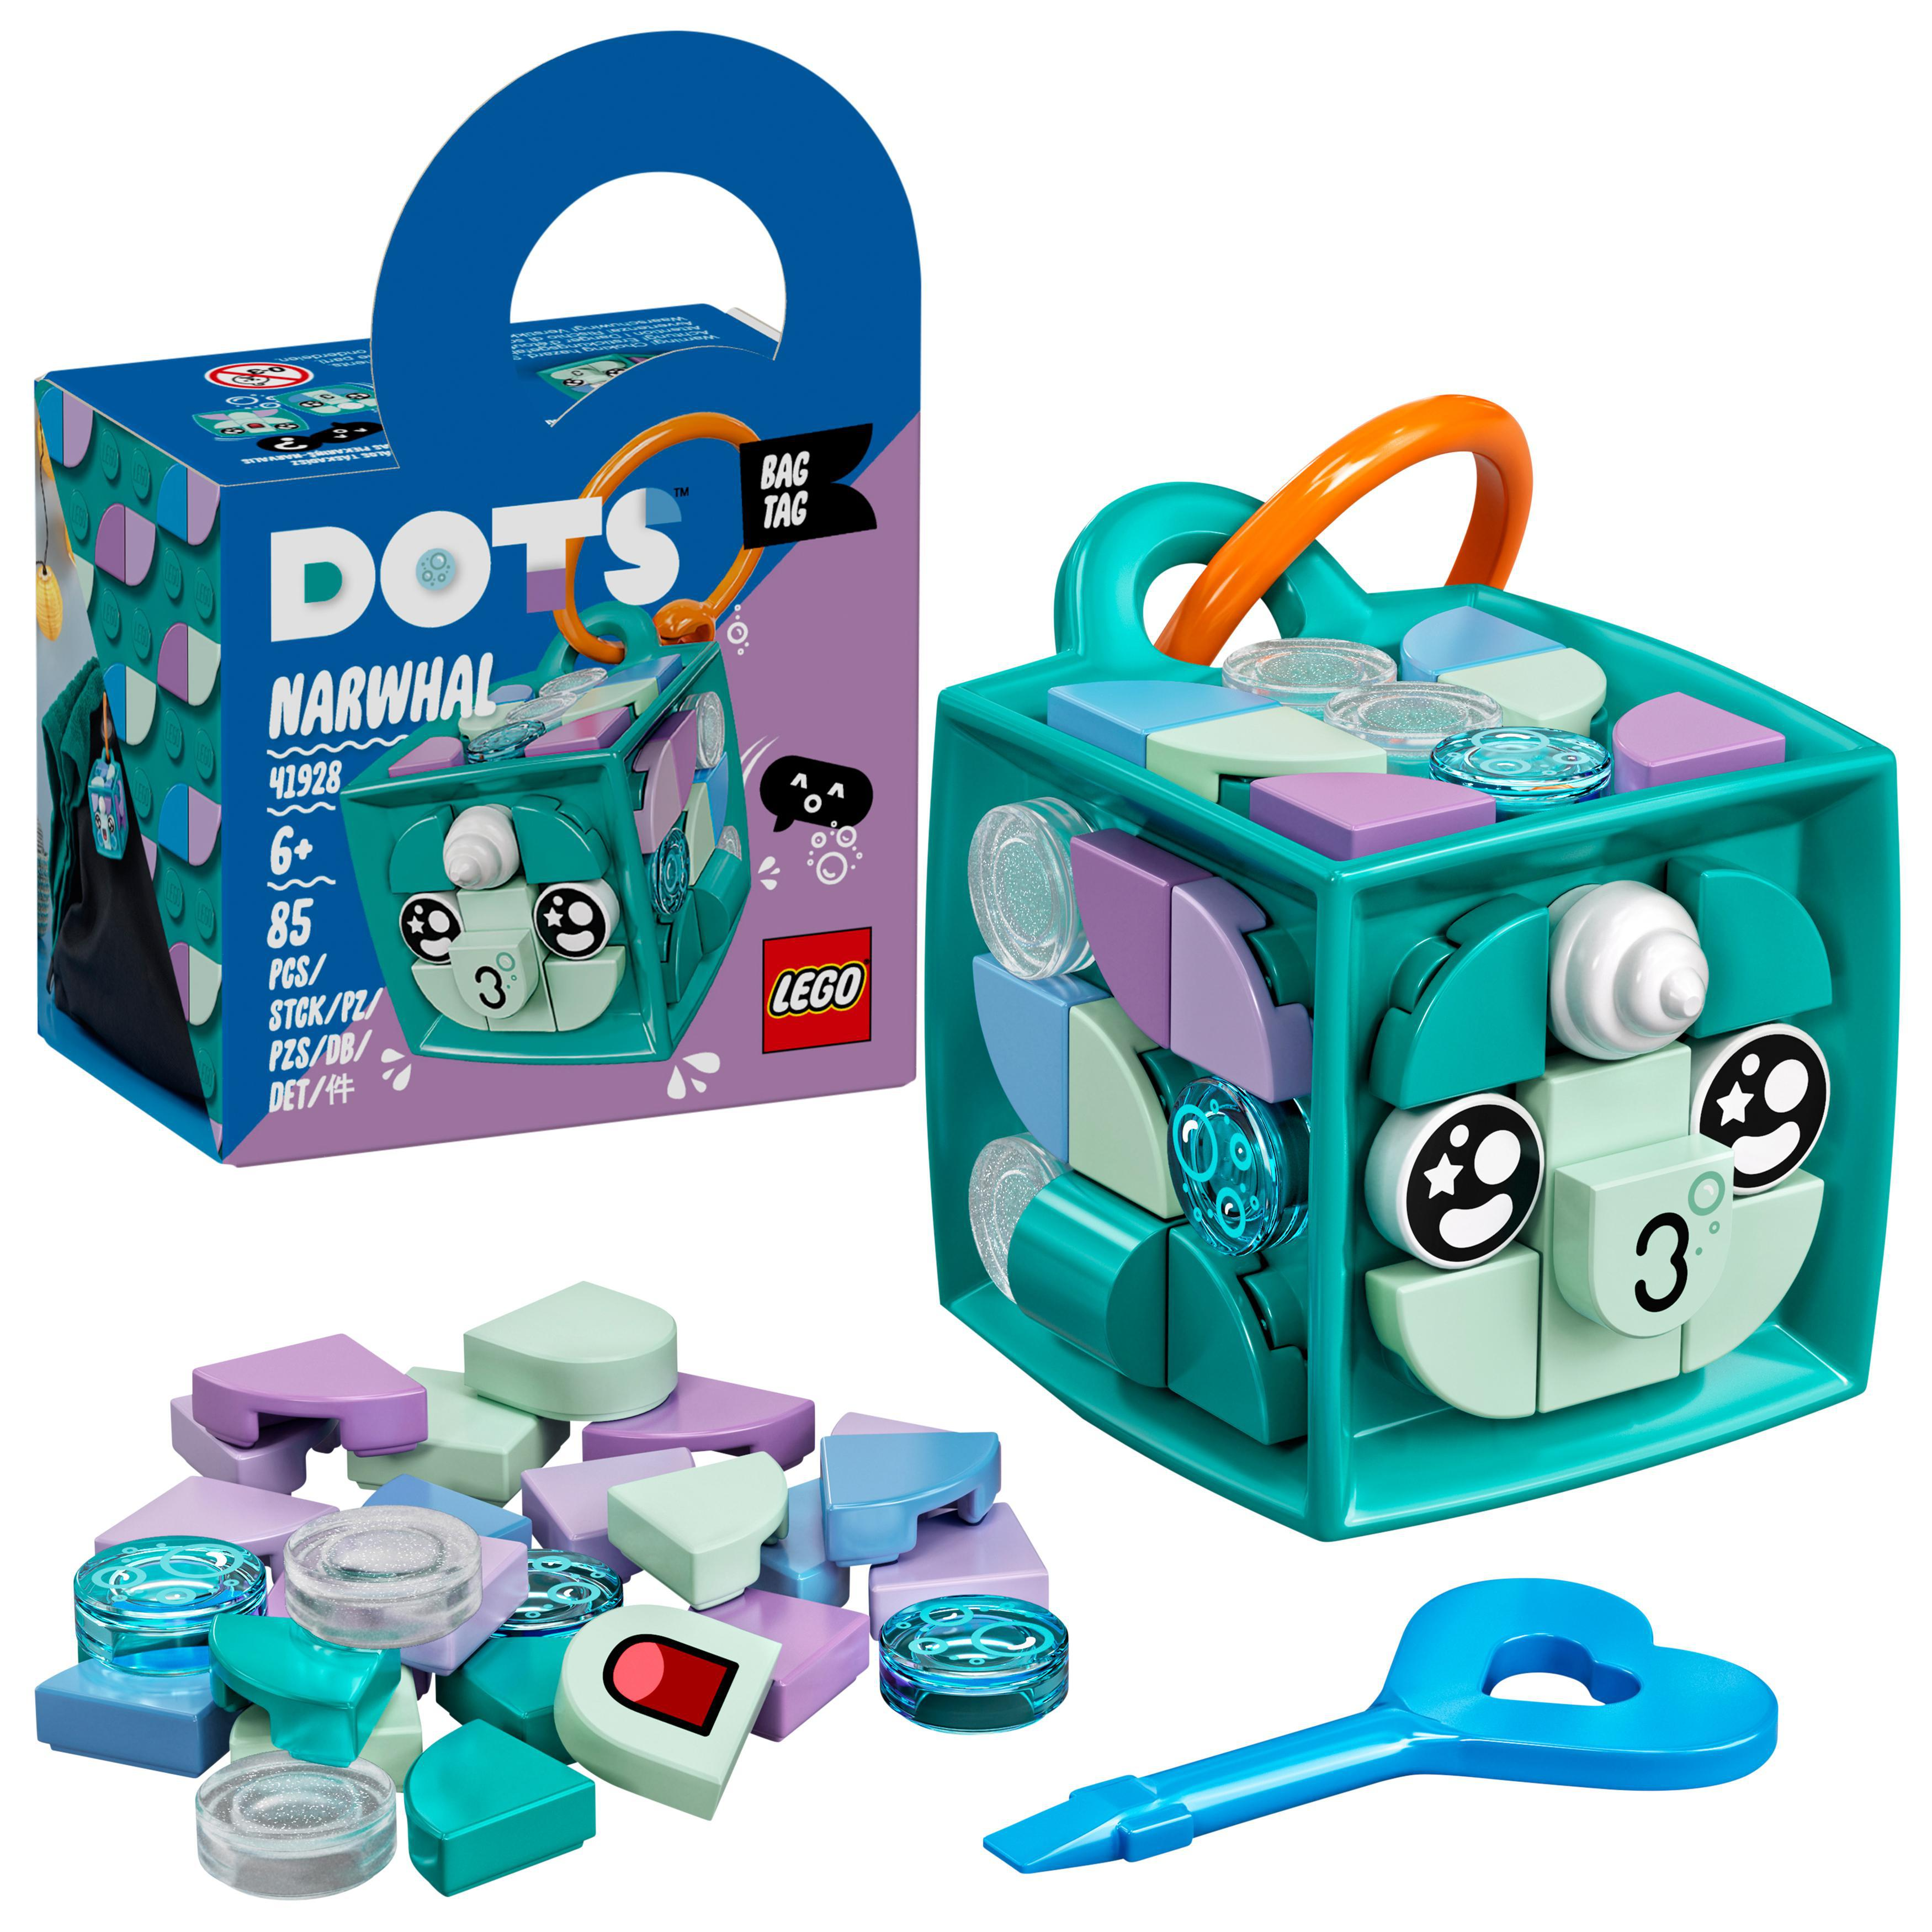 LEGO DOTS - Bag Tag Narwhal (41928)